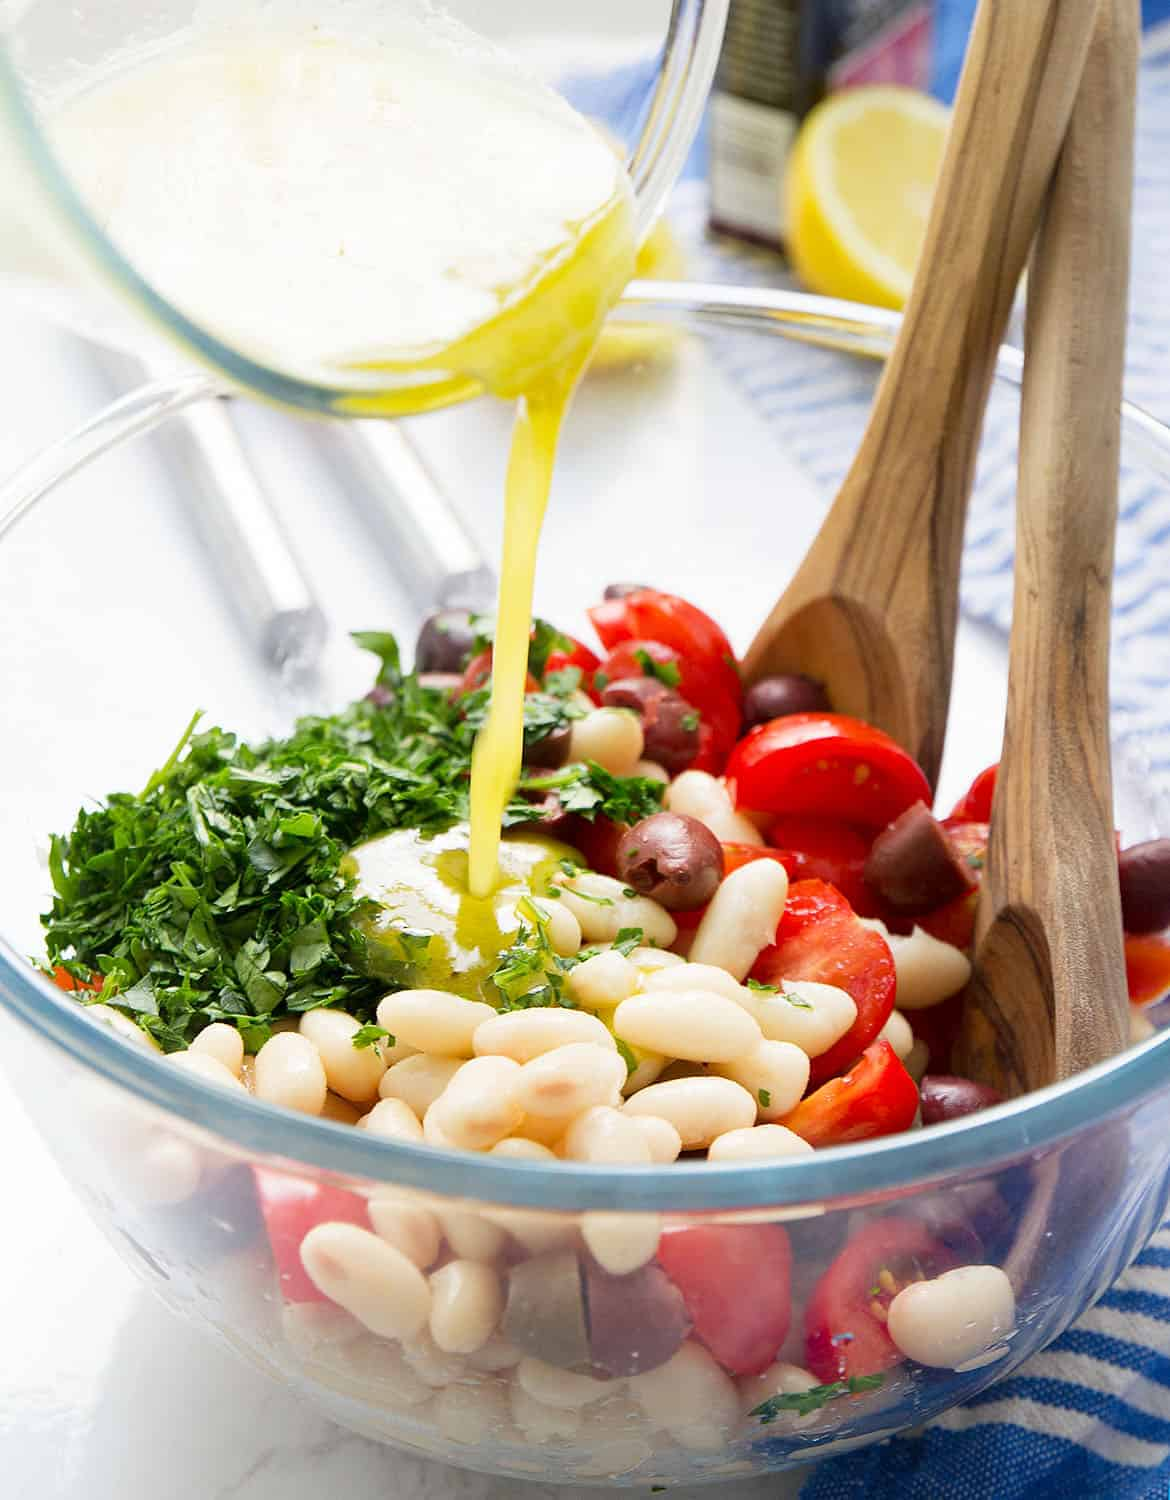 This super tasty cannellini bean salad packs a protein punch and big flavors in less than 10 minutes!